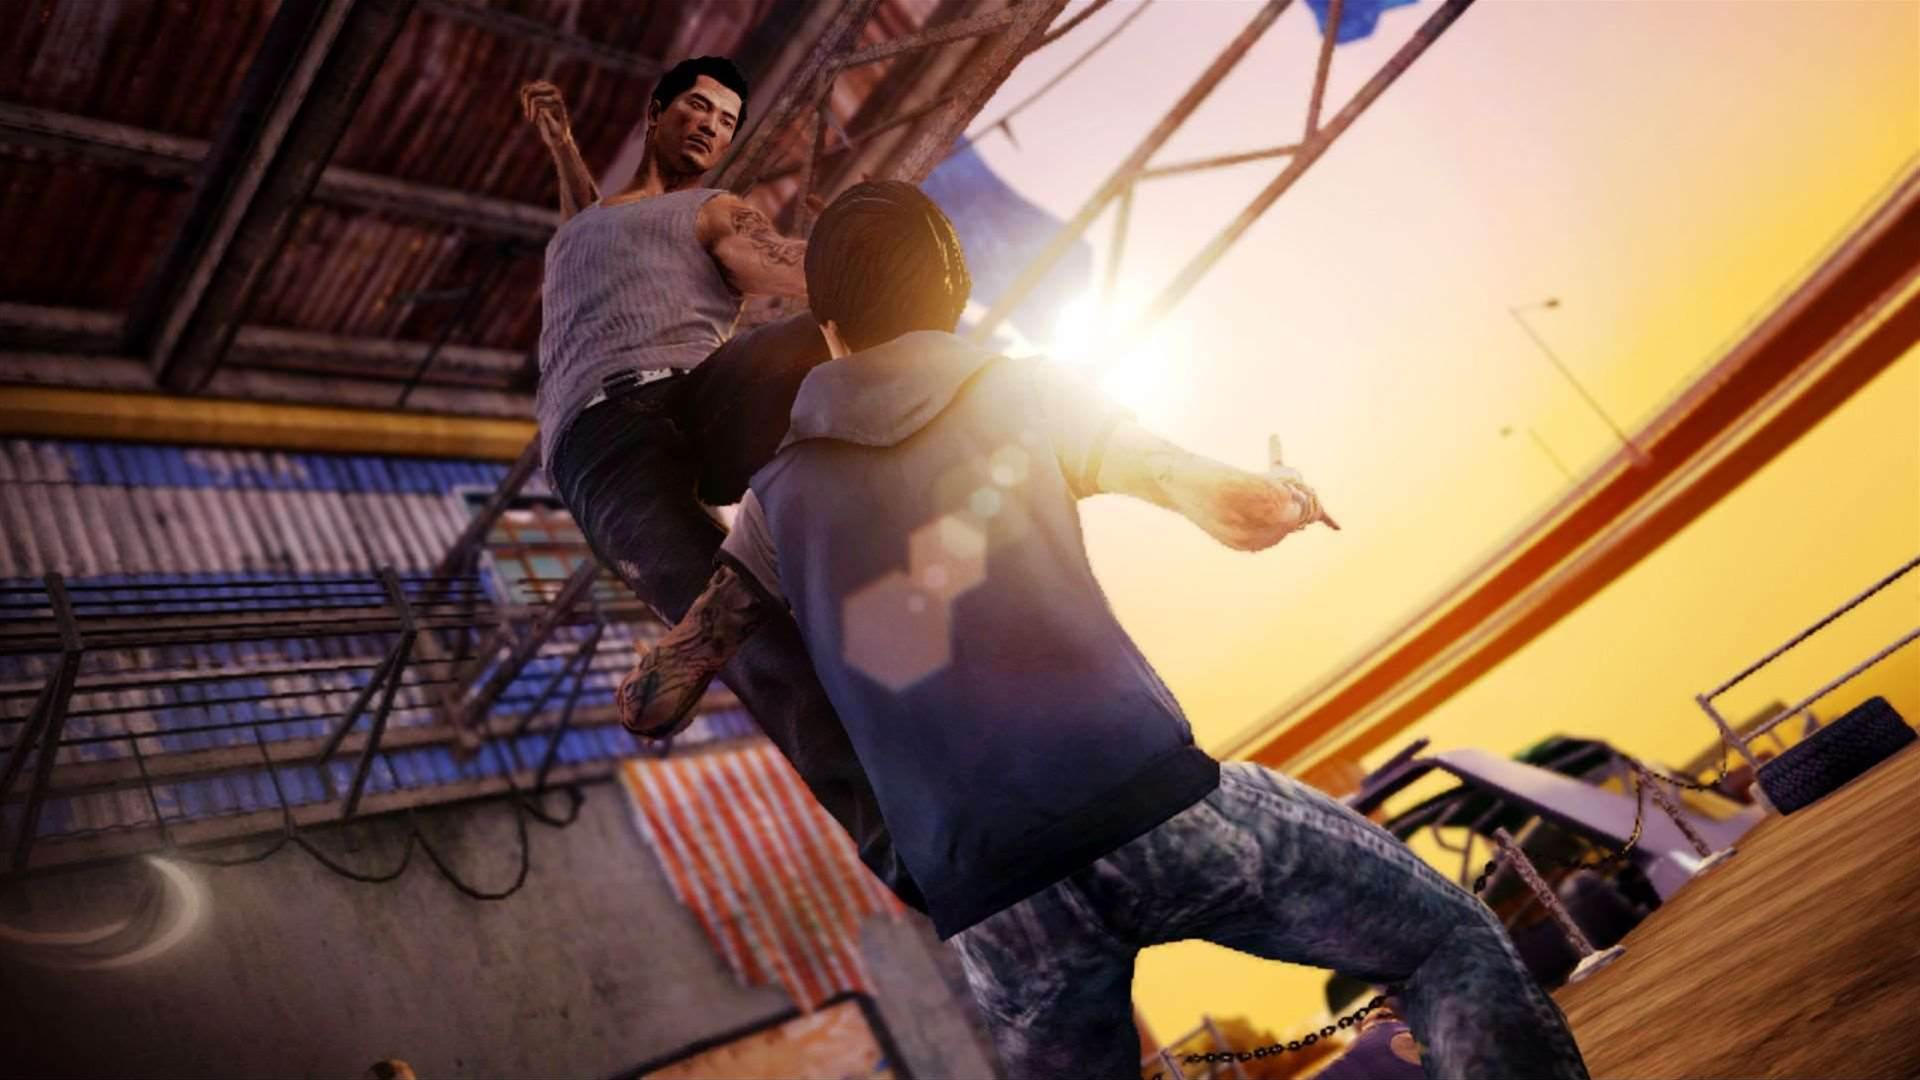 Sleeping Dogs combat trailer hints at classification woes